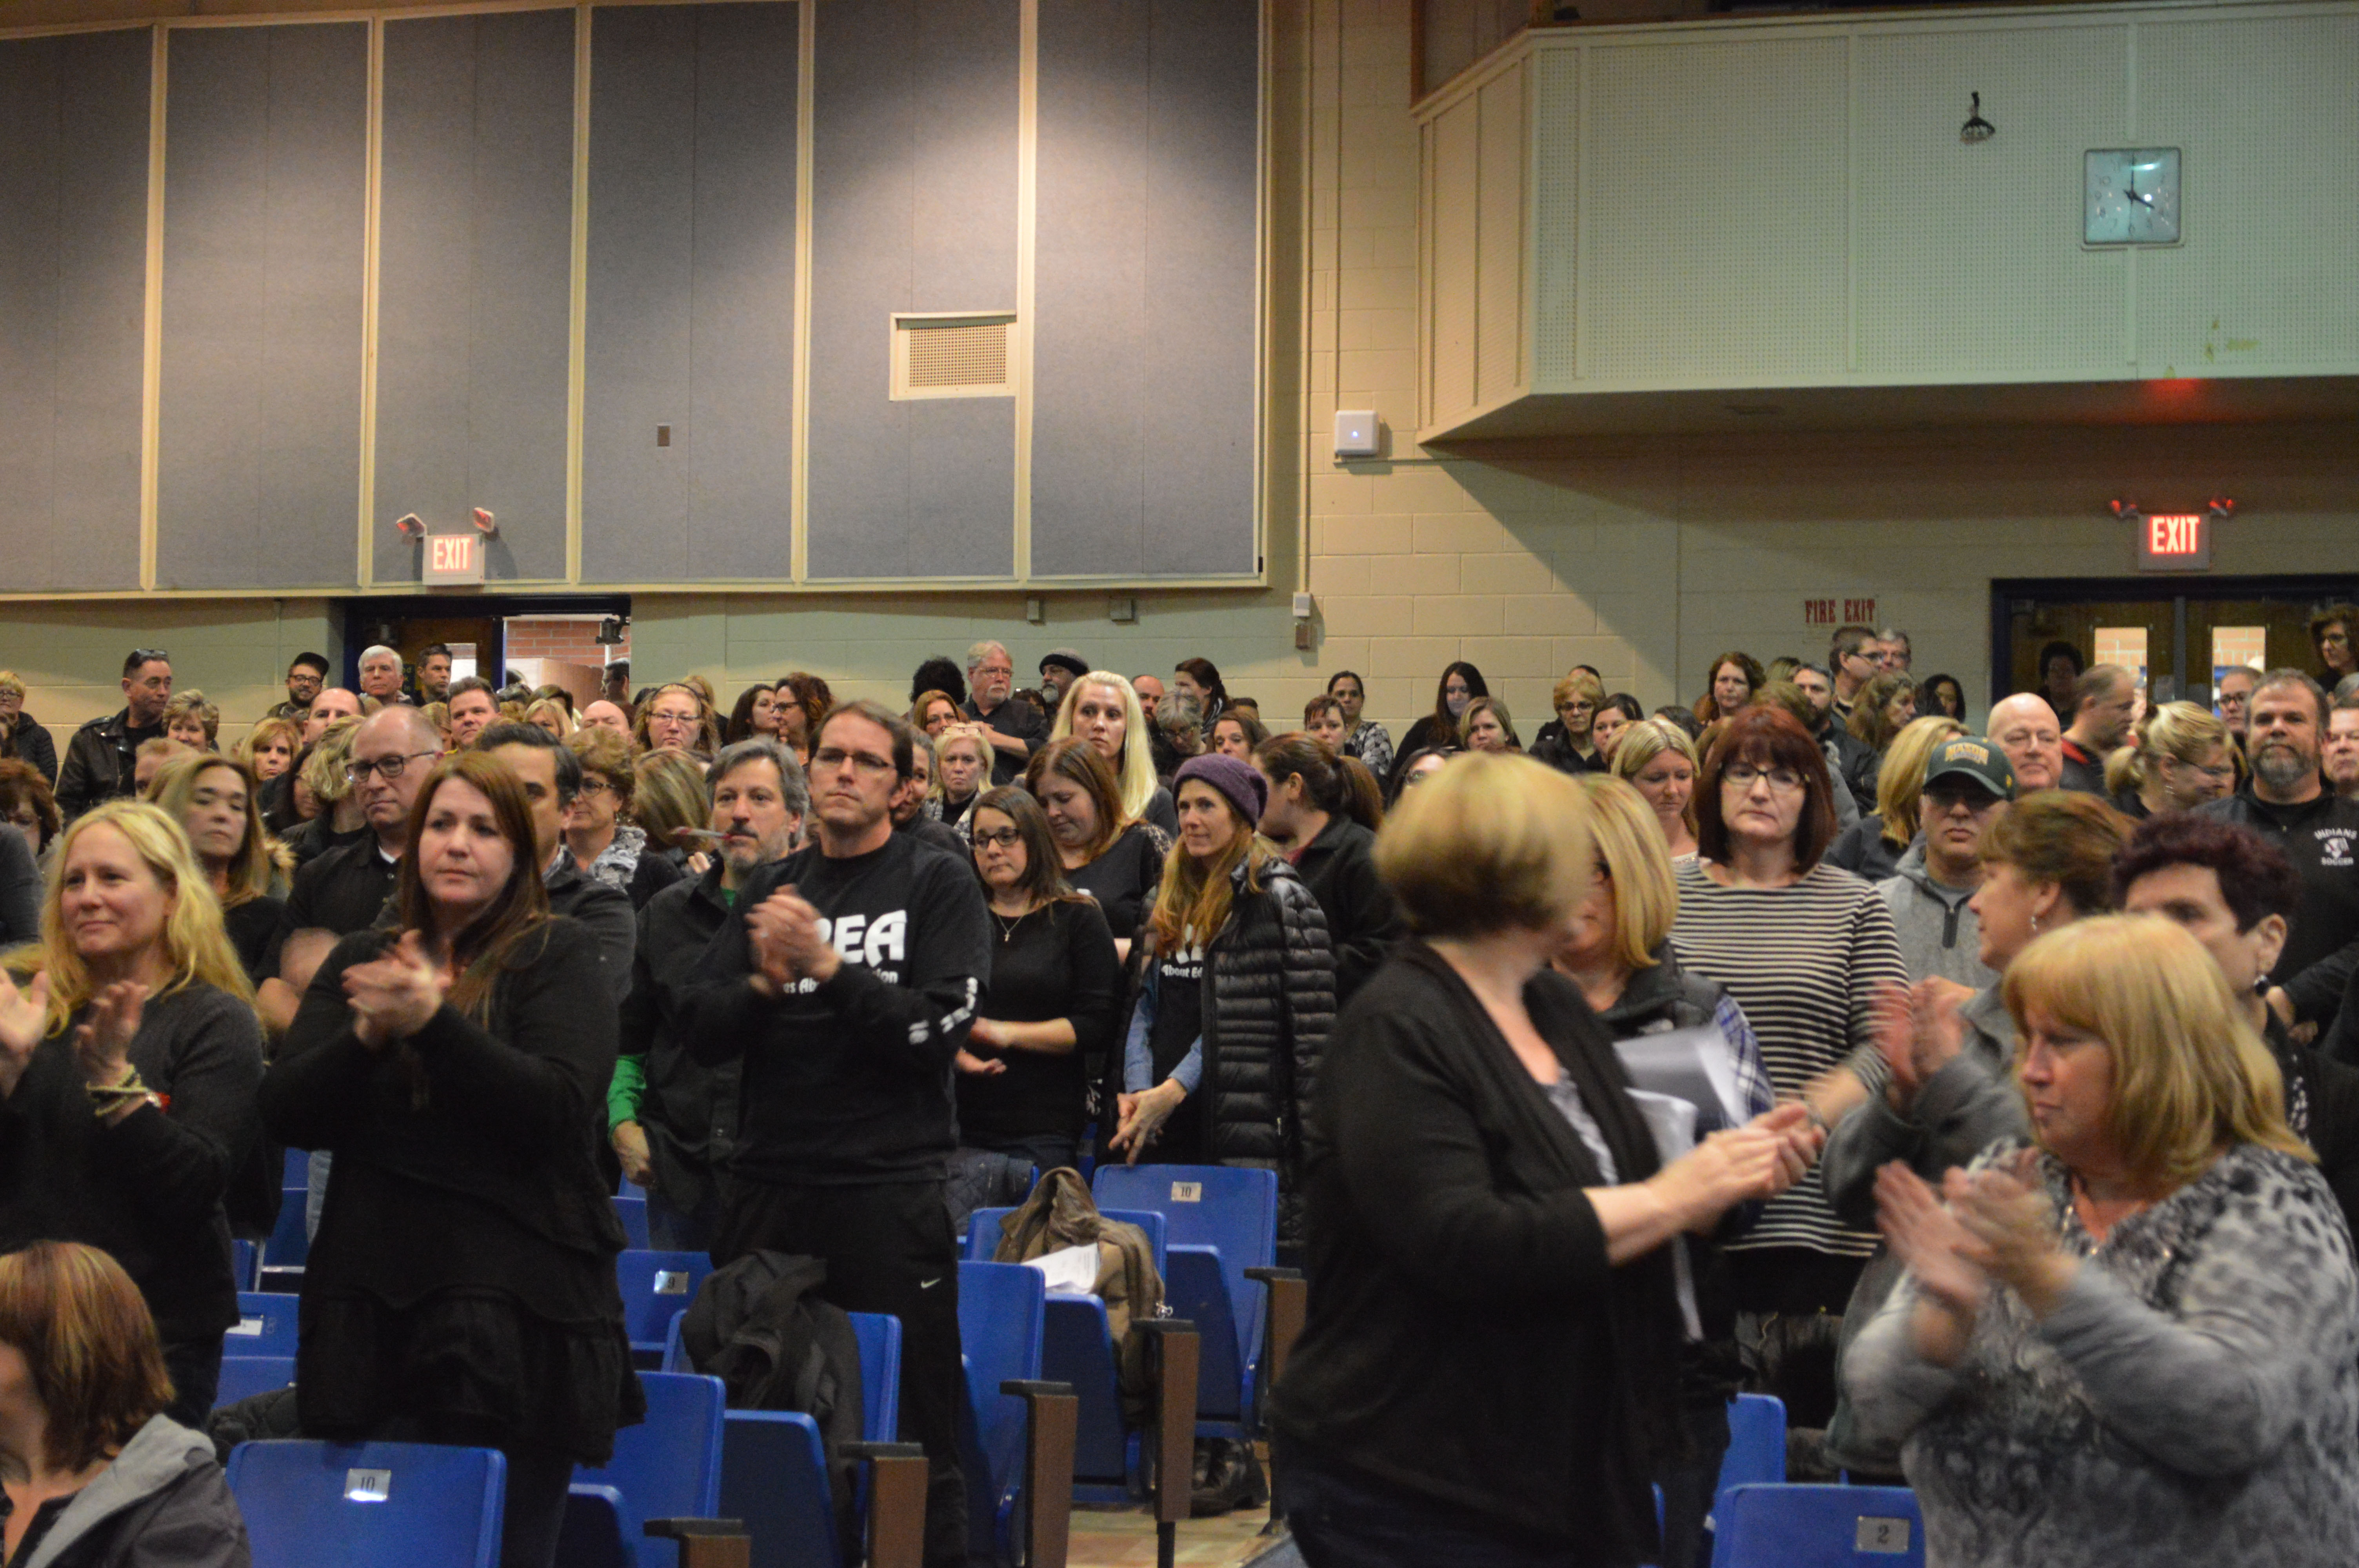 Teachers in the Toms River Regional school district rally at a board meeting over contract negotiations. (Photo: Daniel Nee)